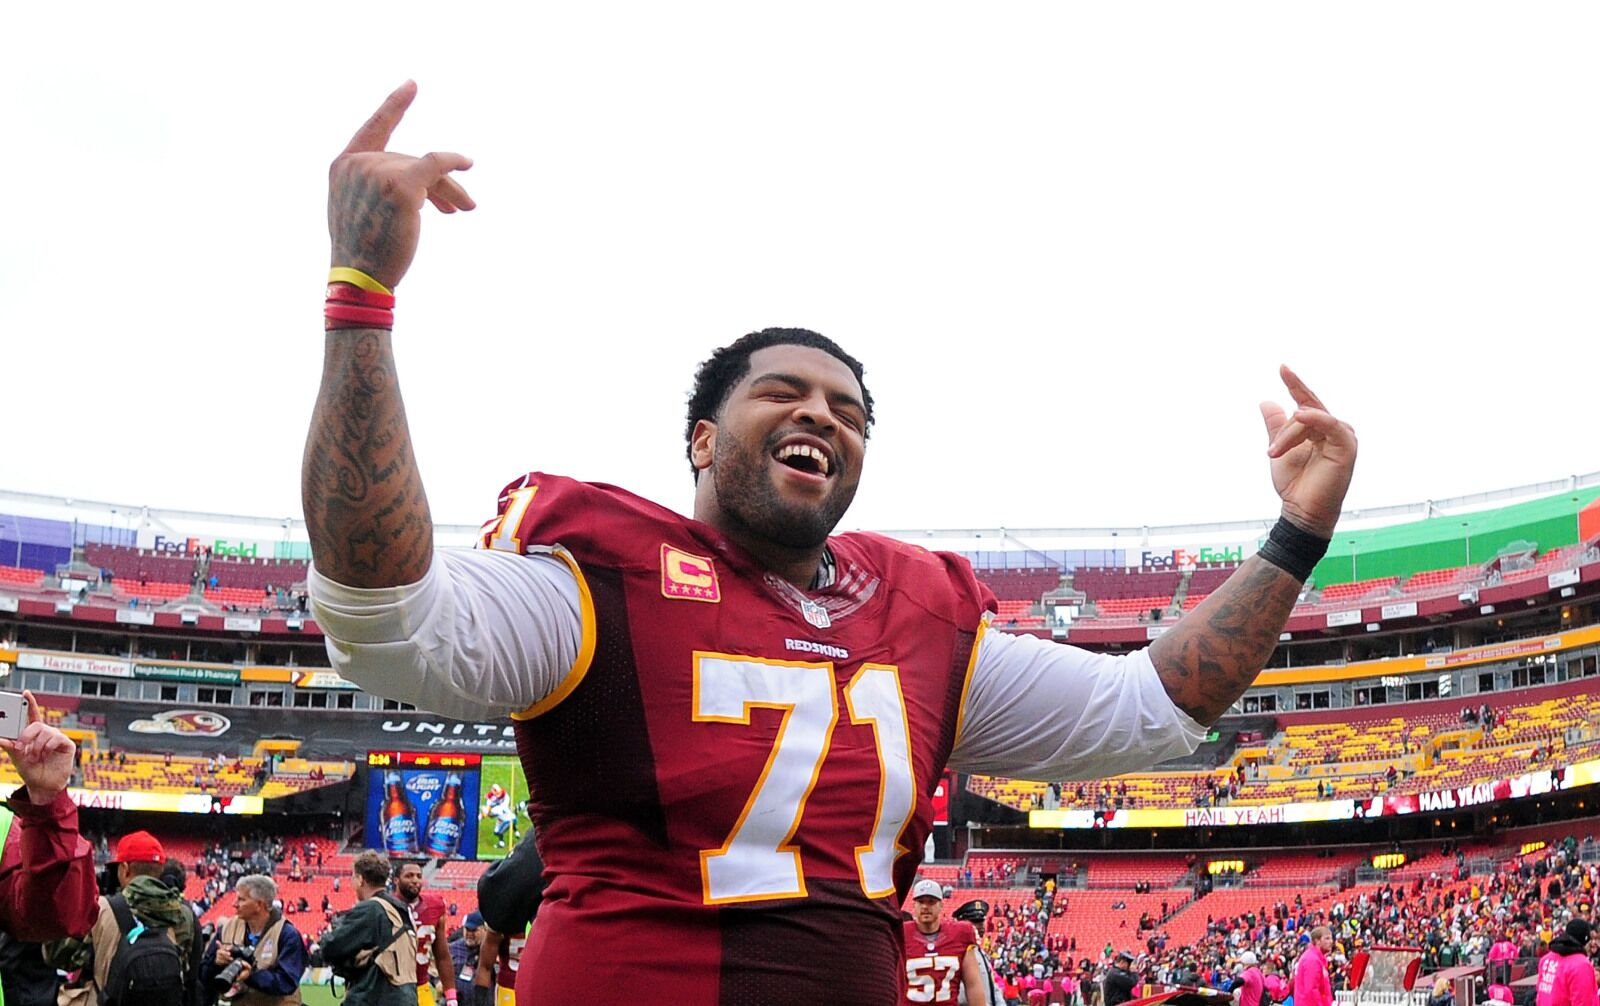 Trent Williams would be an absolute godsend for the Seahawks now